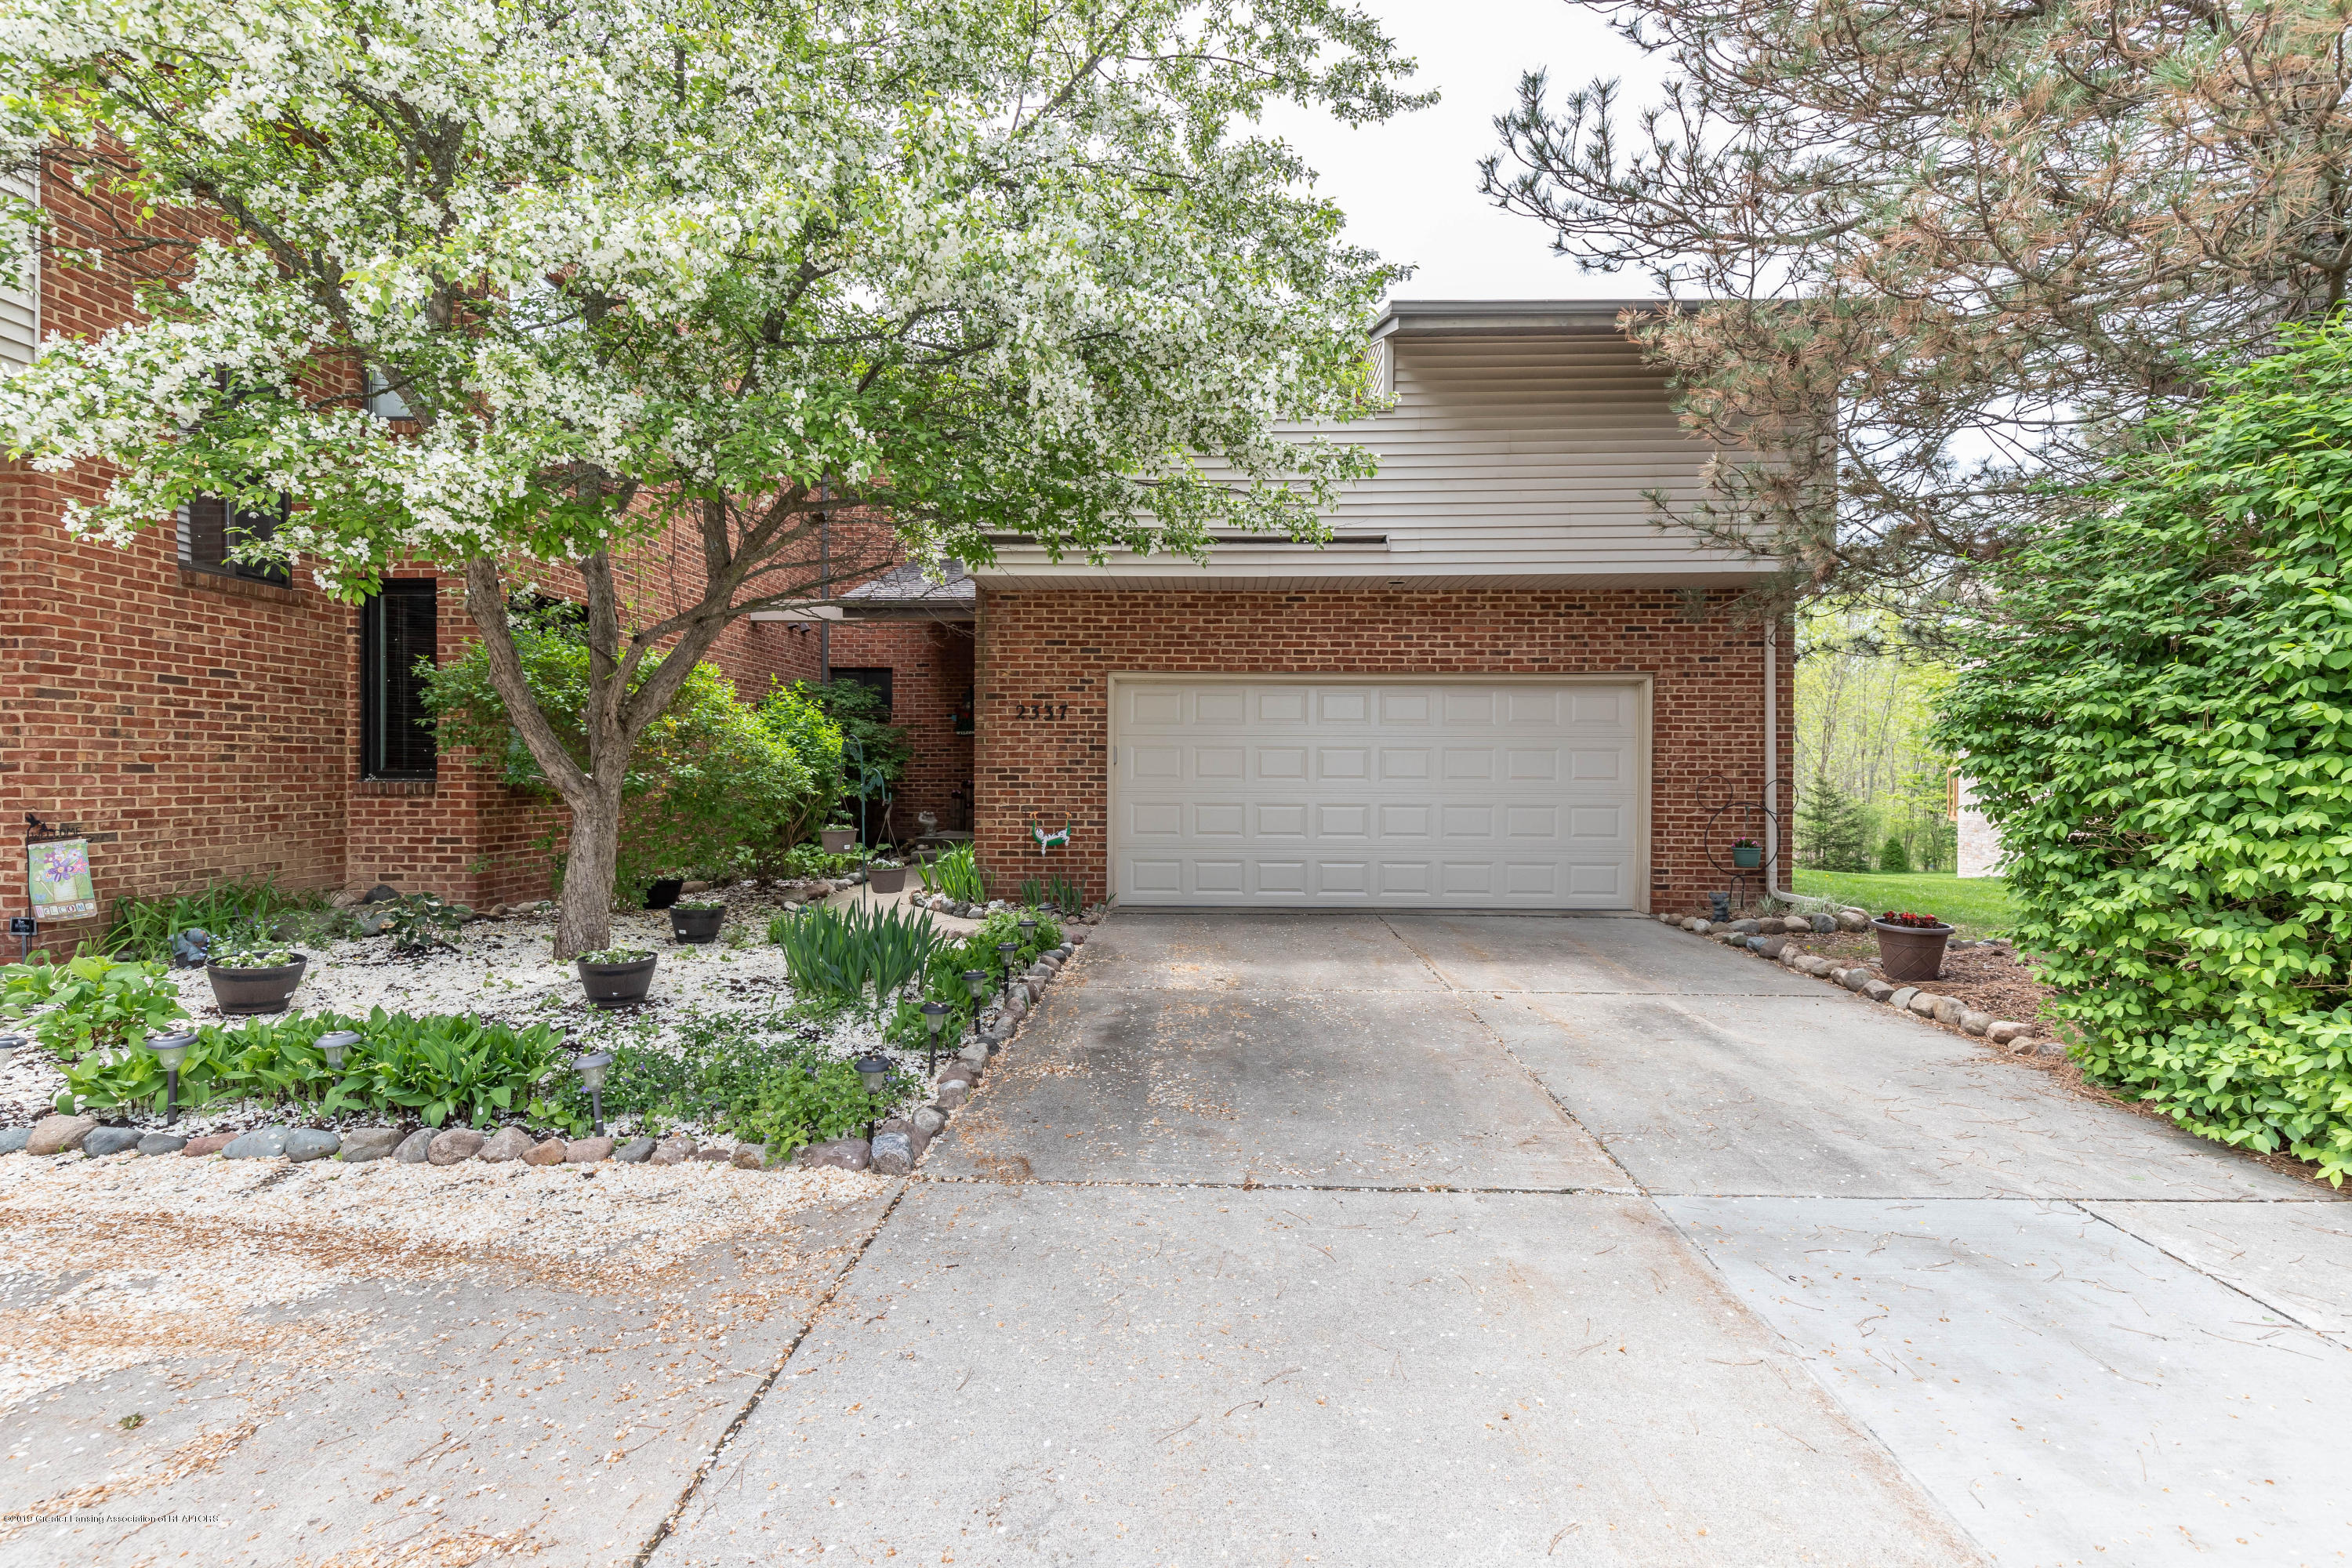 2337 Coyote Creek Dr 18 - Front - 1